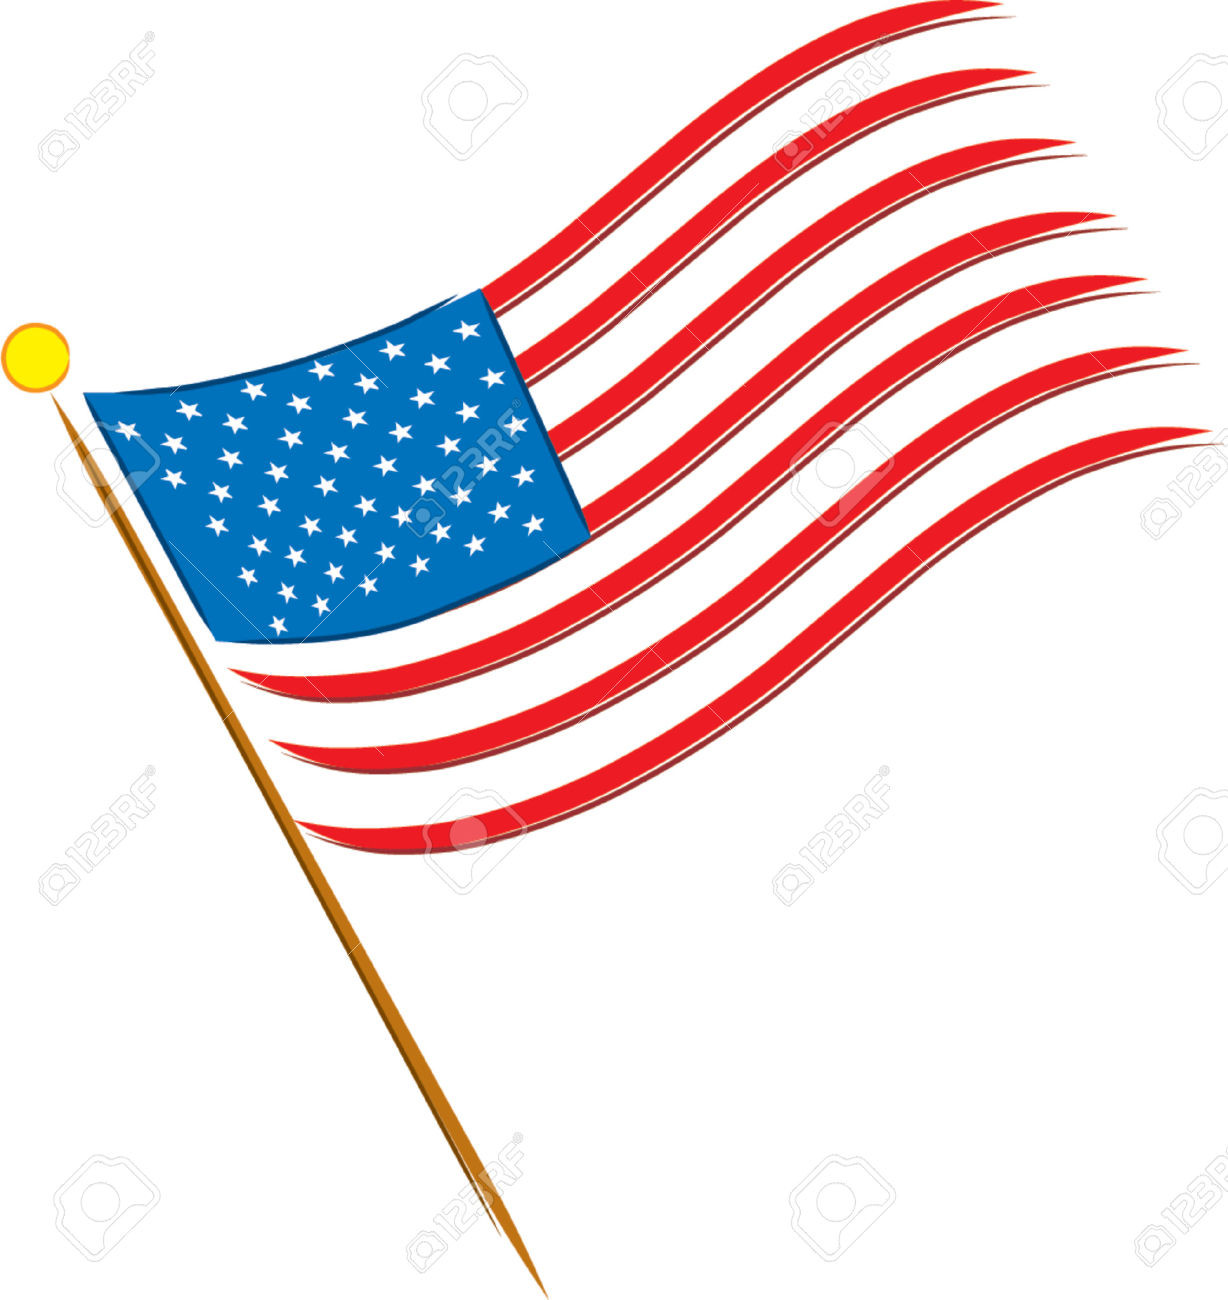 Flag of united states clipart banner free stock United states clipart no background - ClipartFest banner free stock